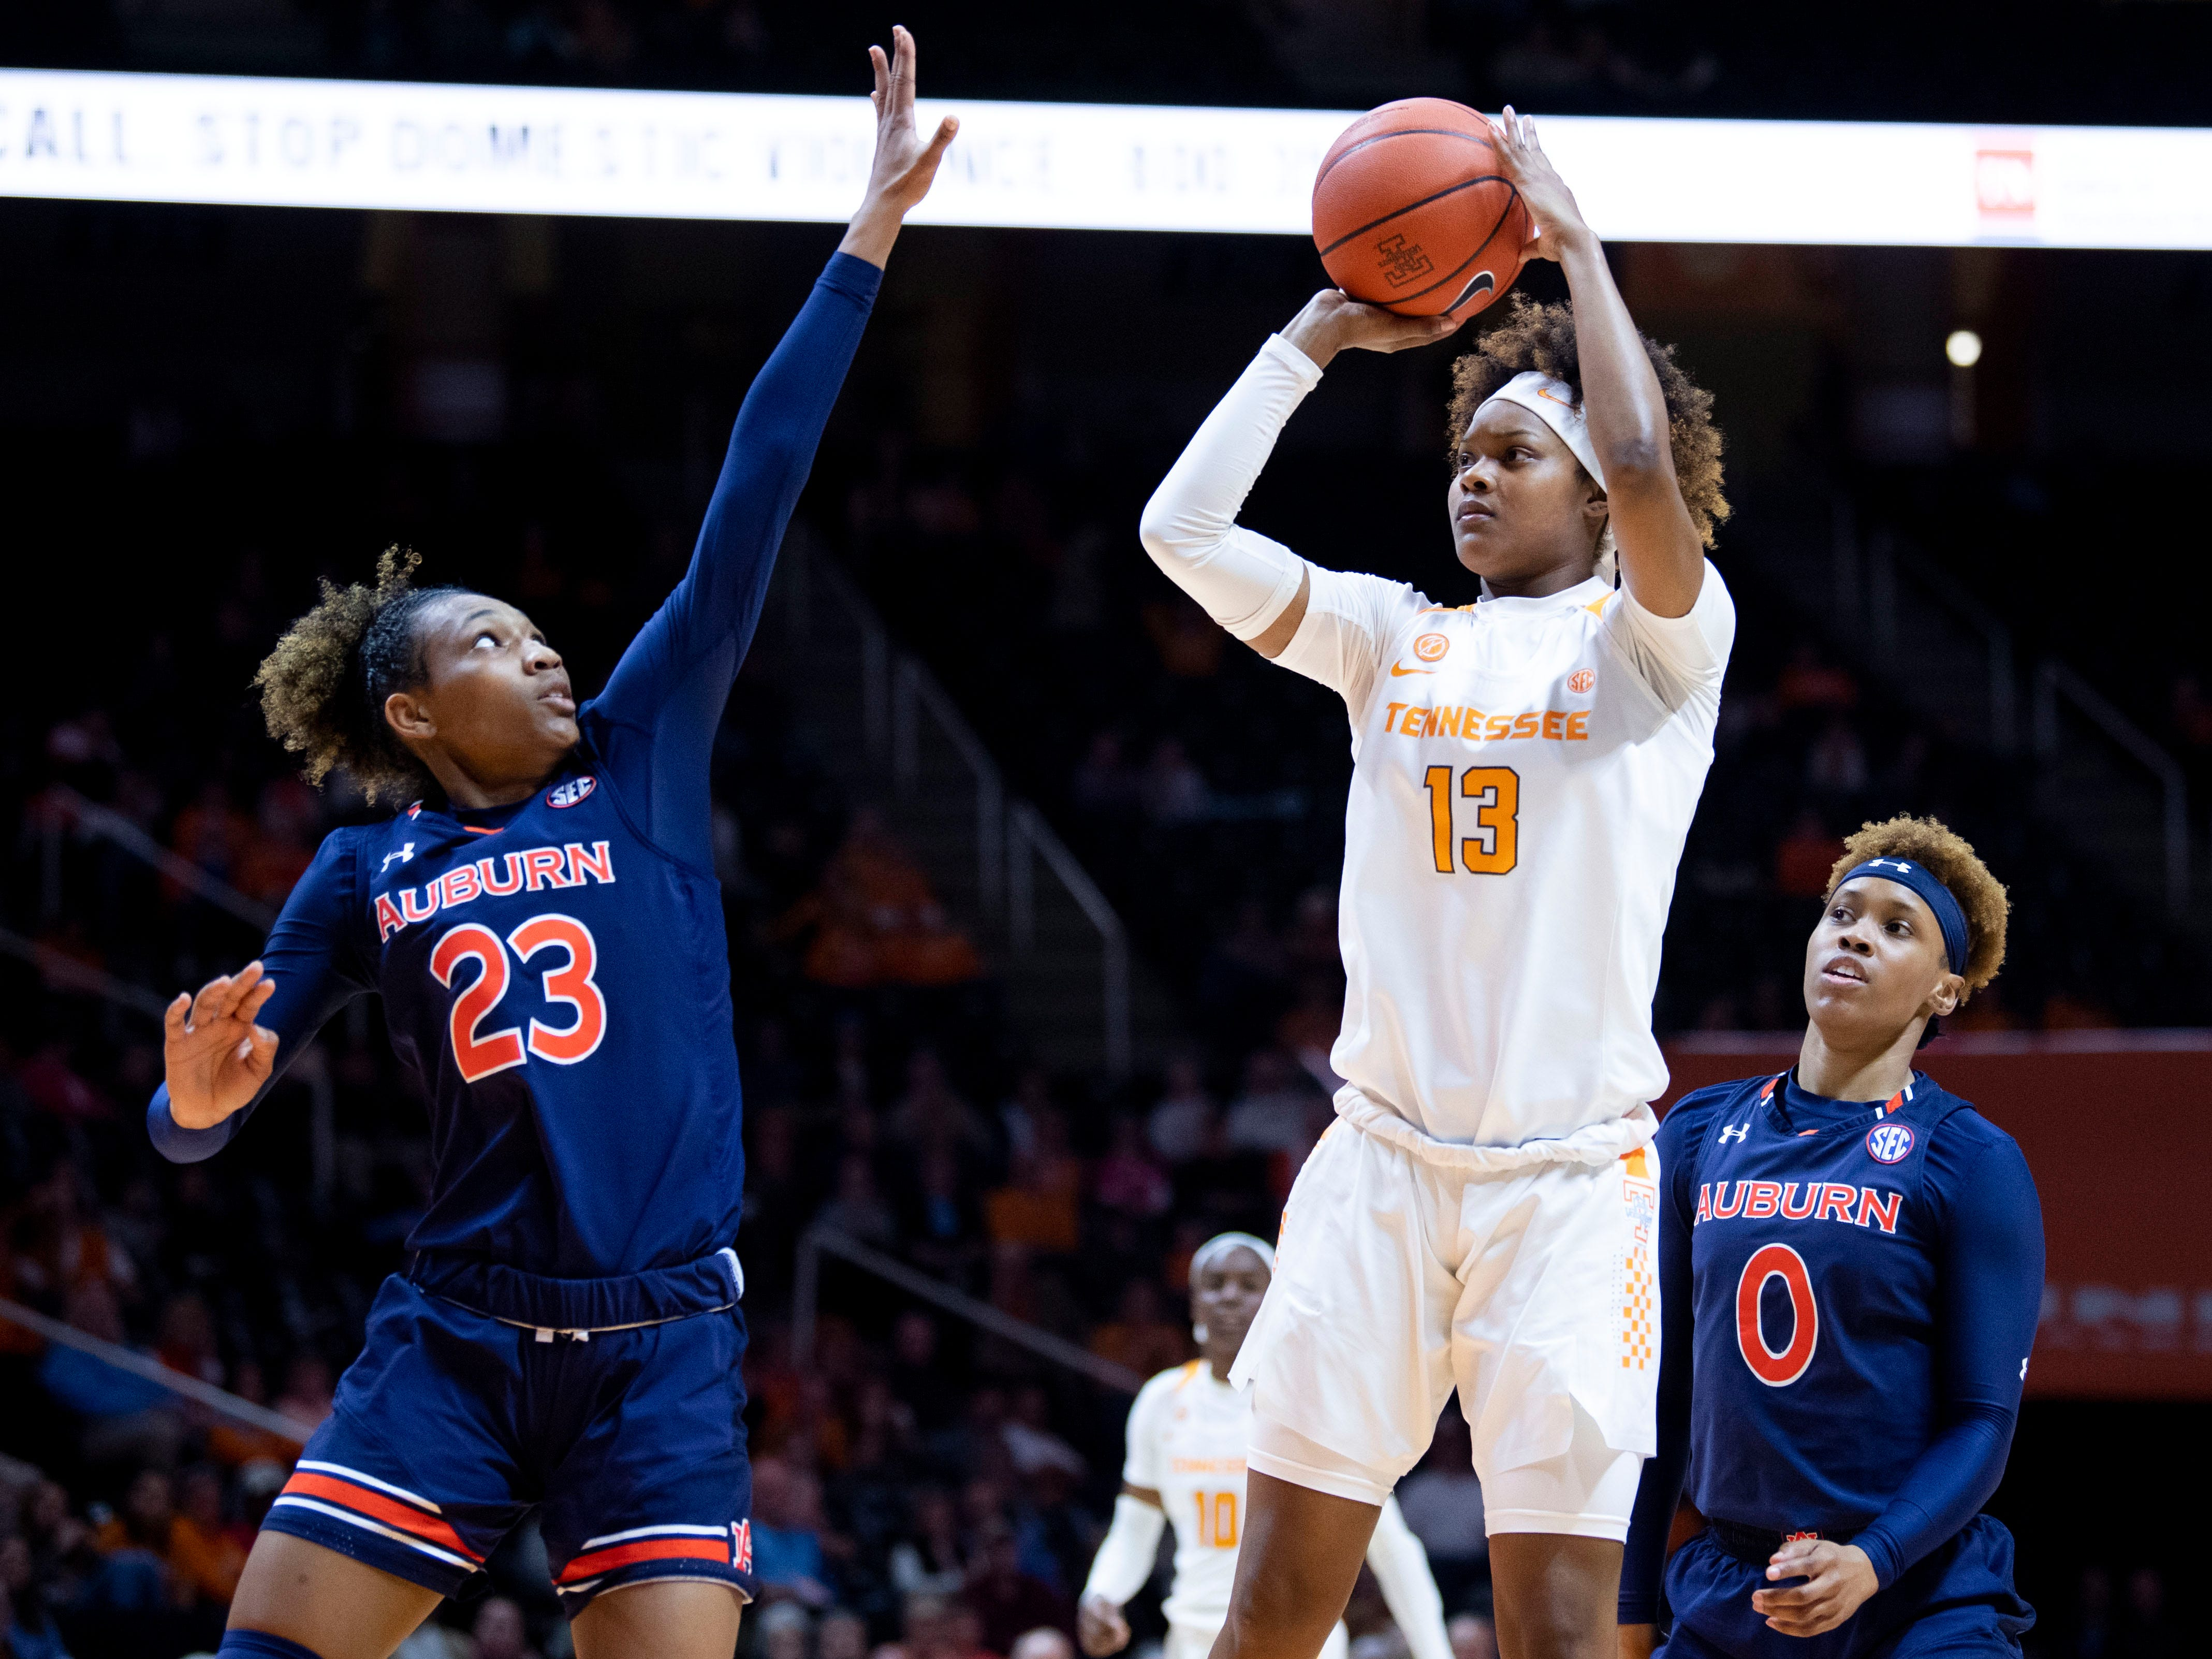 Tennessee's Jazmine Massengill (13) attempts to score while defended by Auburn's Crystal Primm (23) on Thursday, February 14, 2019.